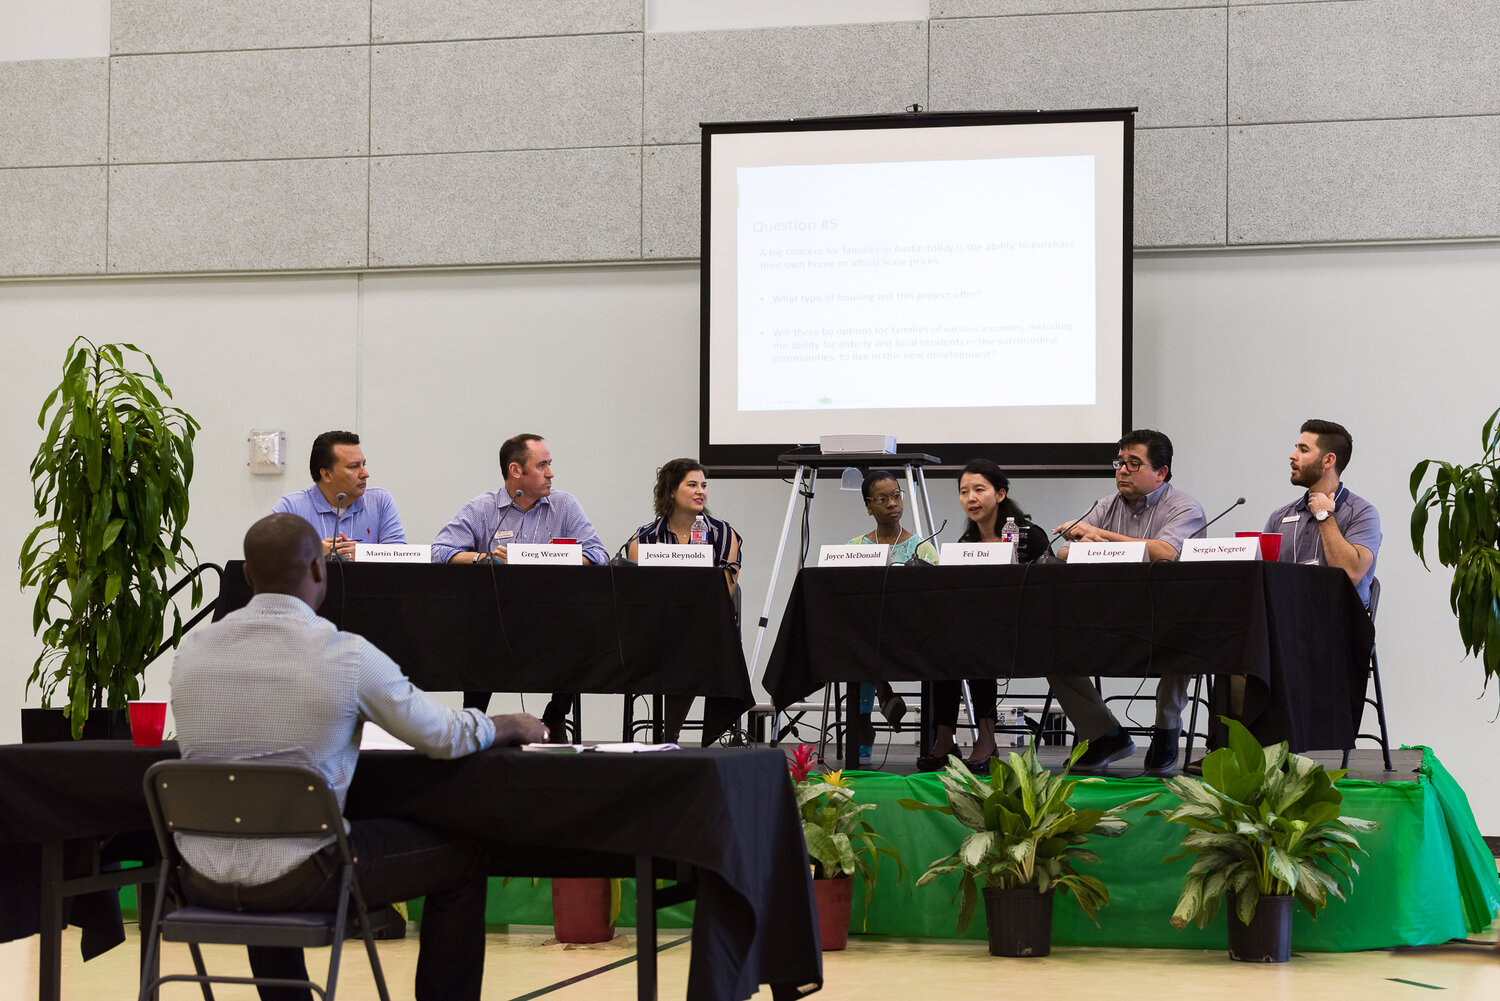 Panel presentation facilitated by Cortez Consulting Services.